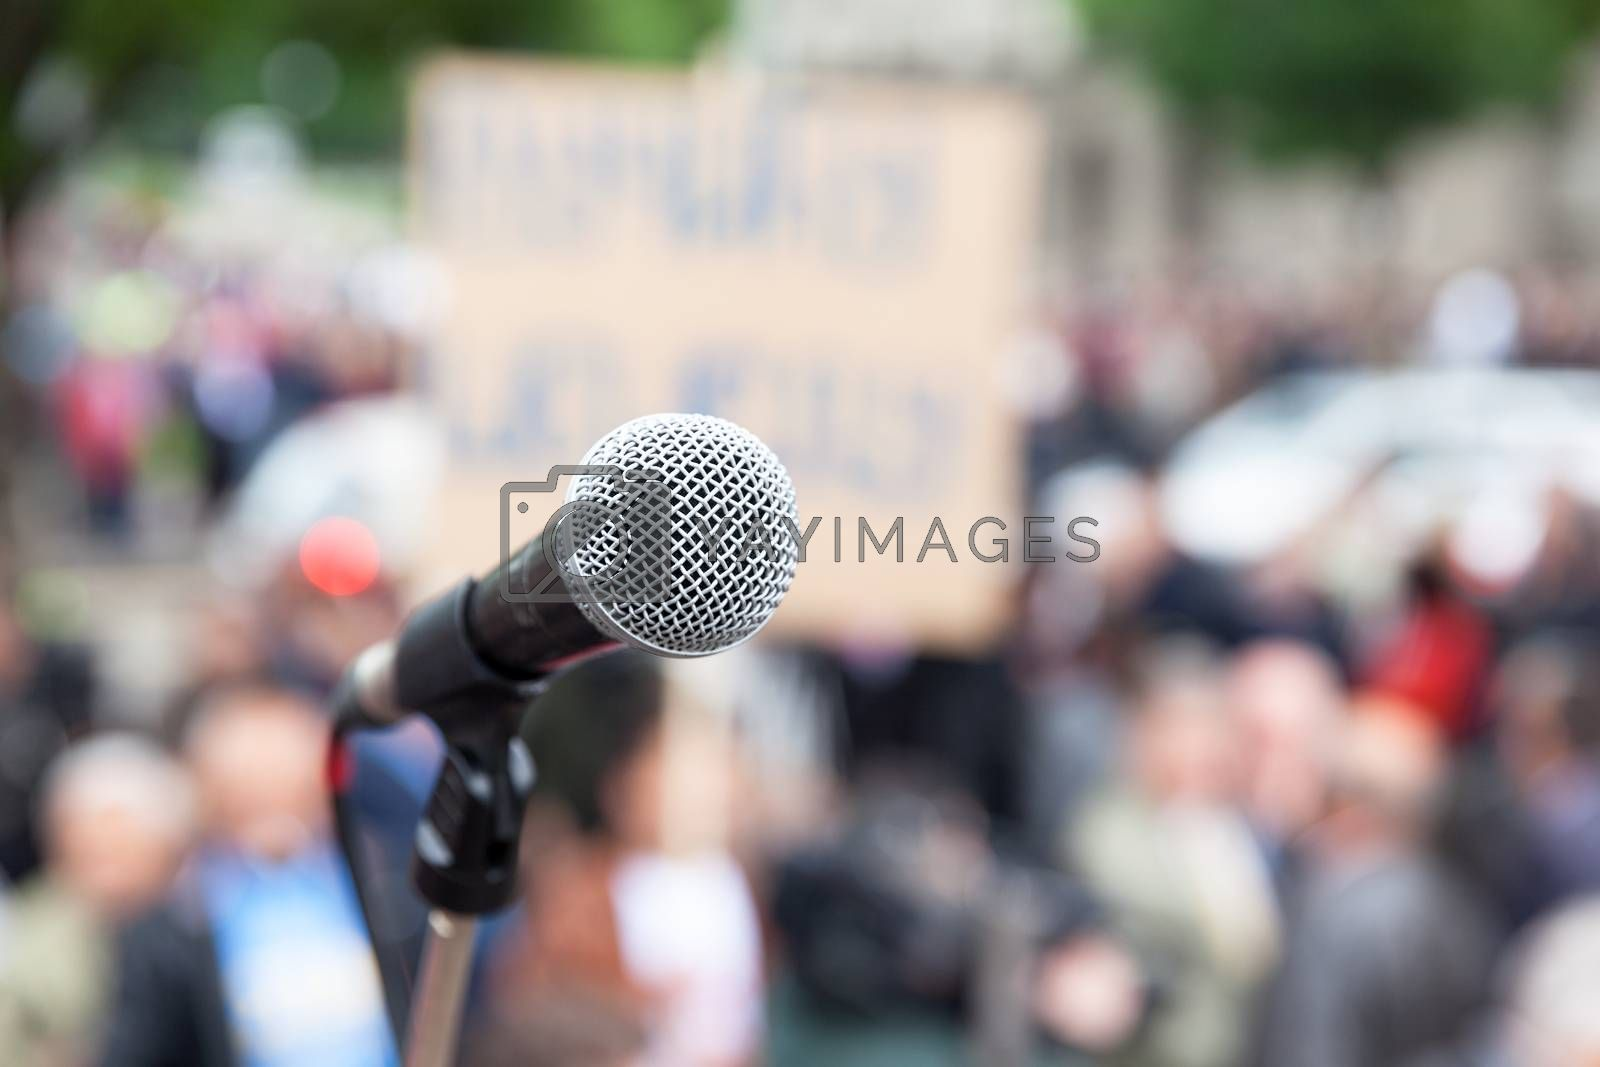 Microphone in focus, blurred crowd in background. Political rally.